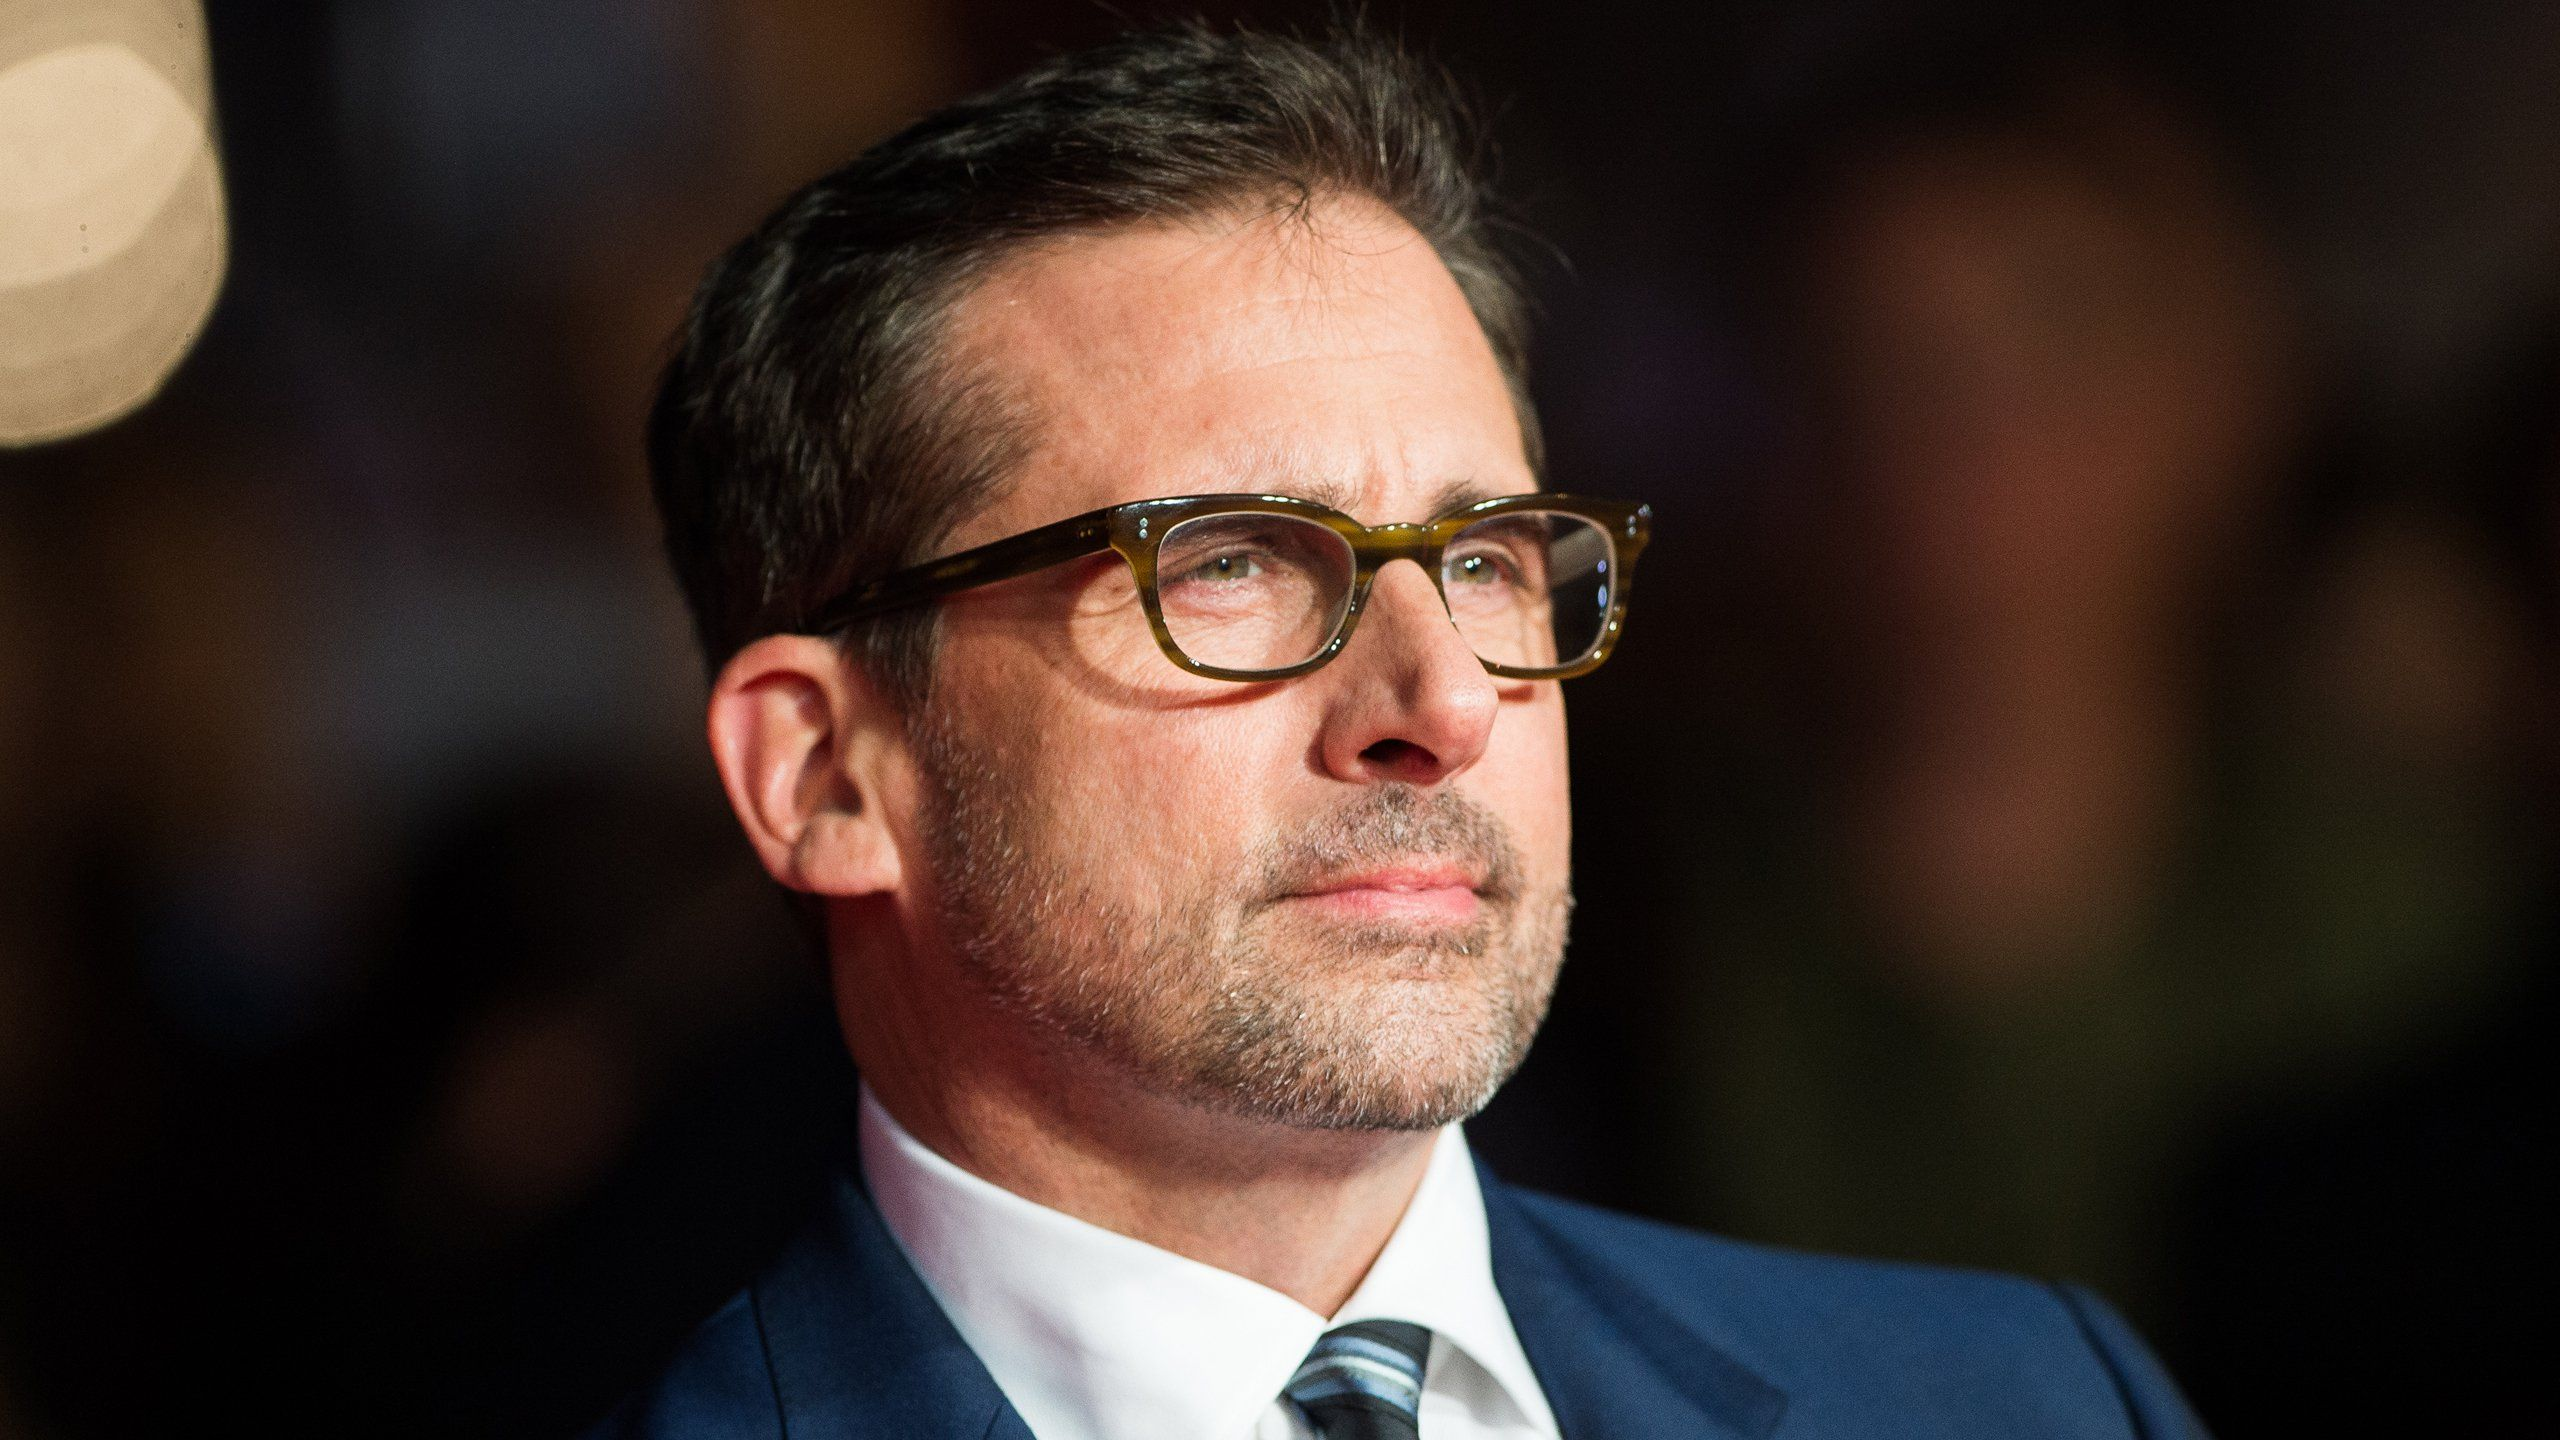 Why Steve Carell Has Left Comedy Behind